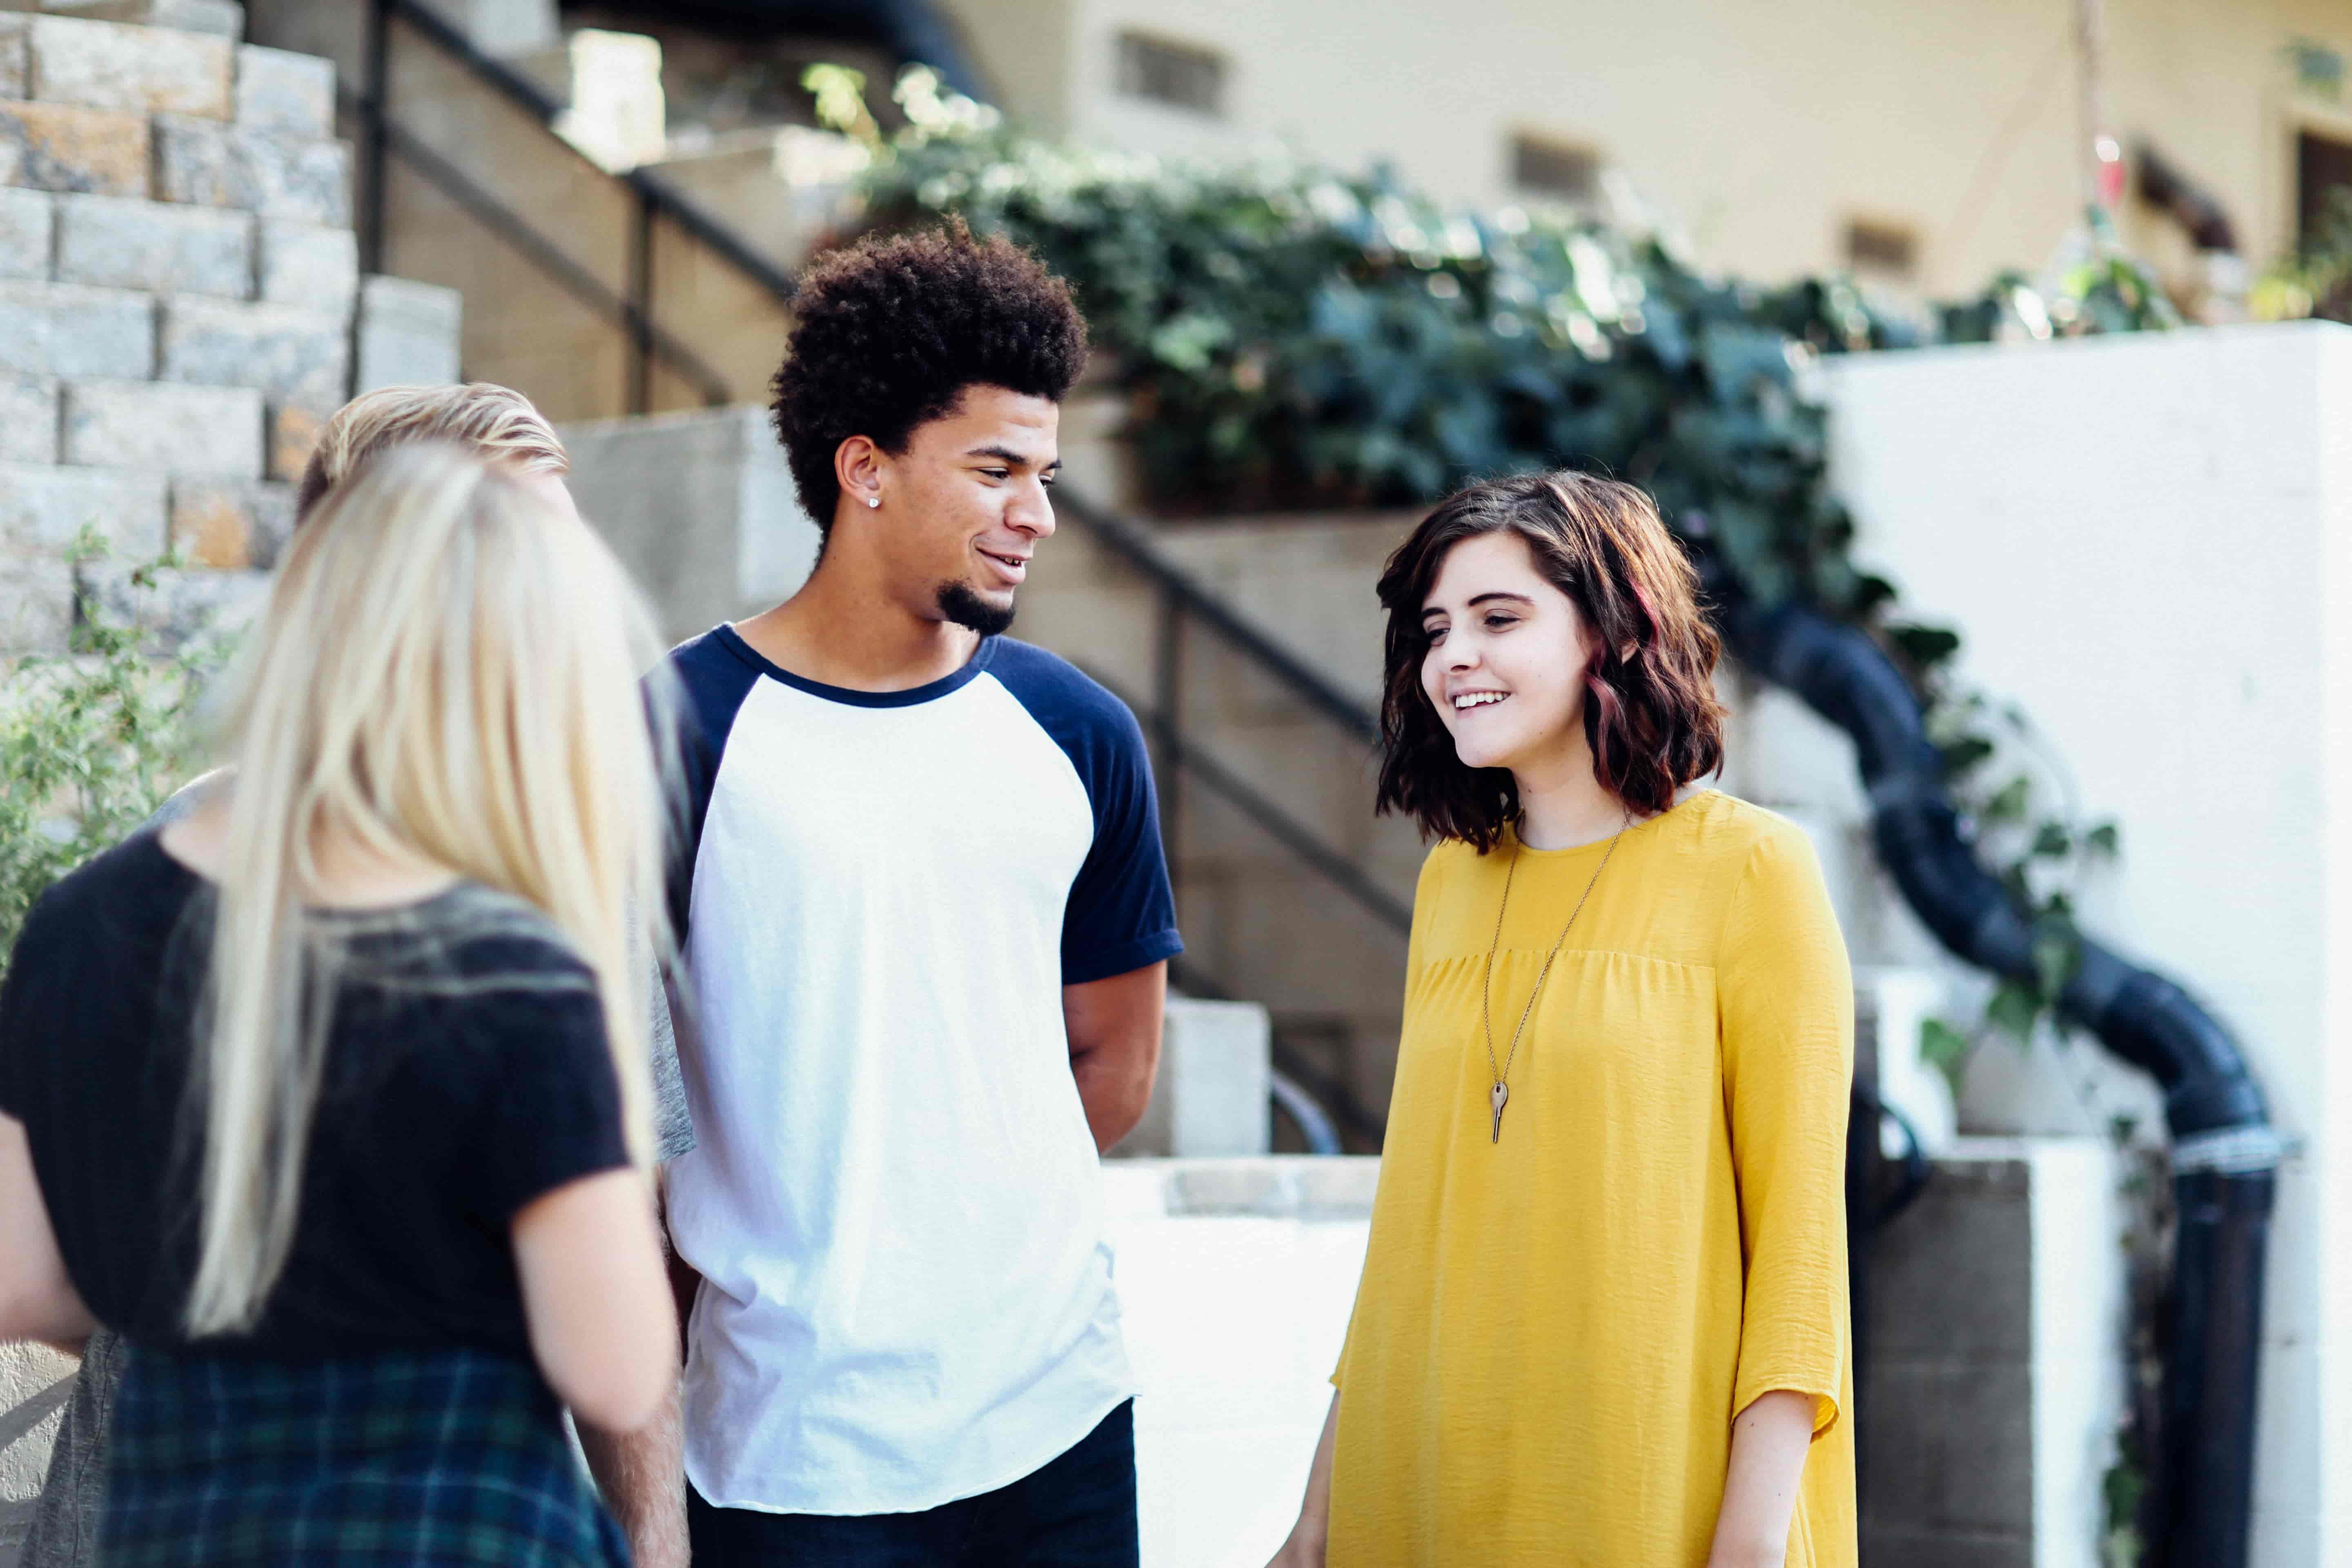 teens-smile-and-chat-together-outside